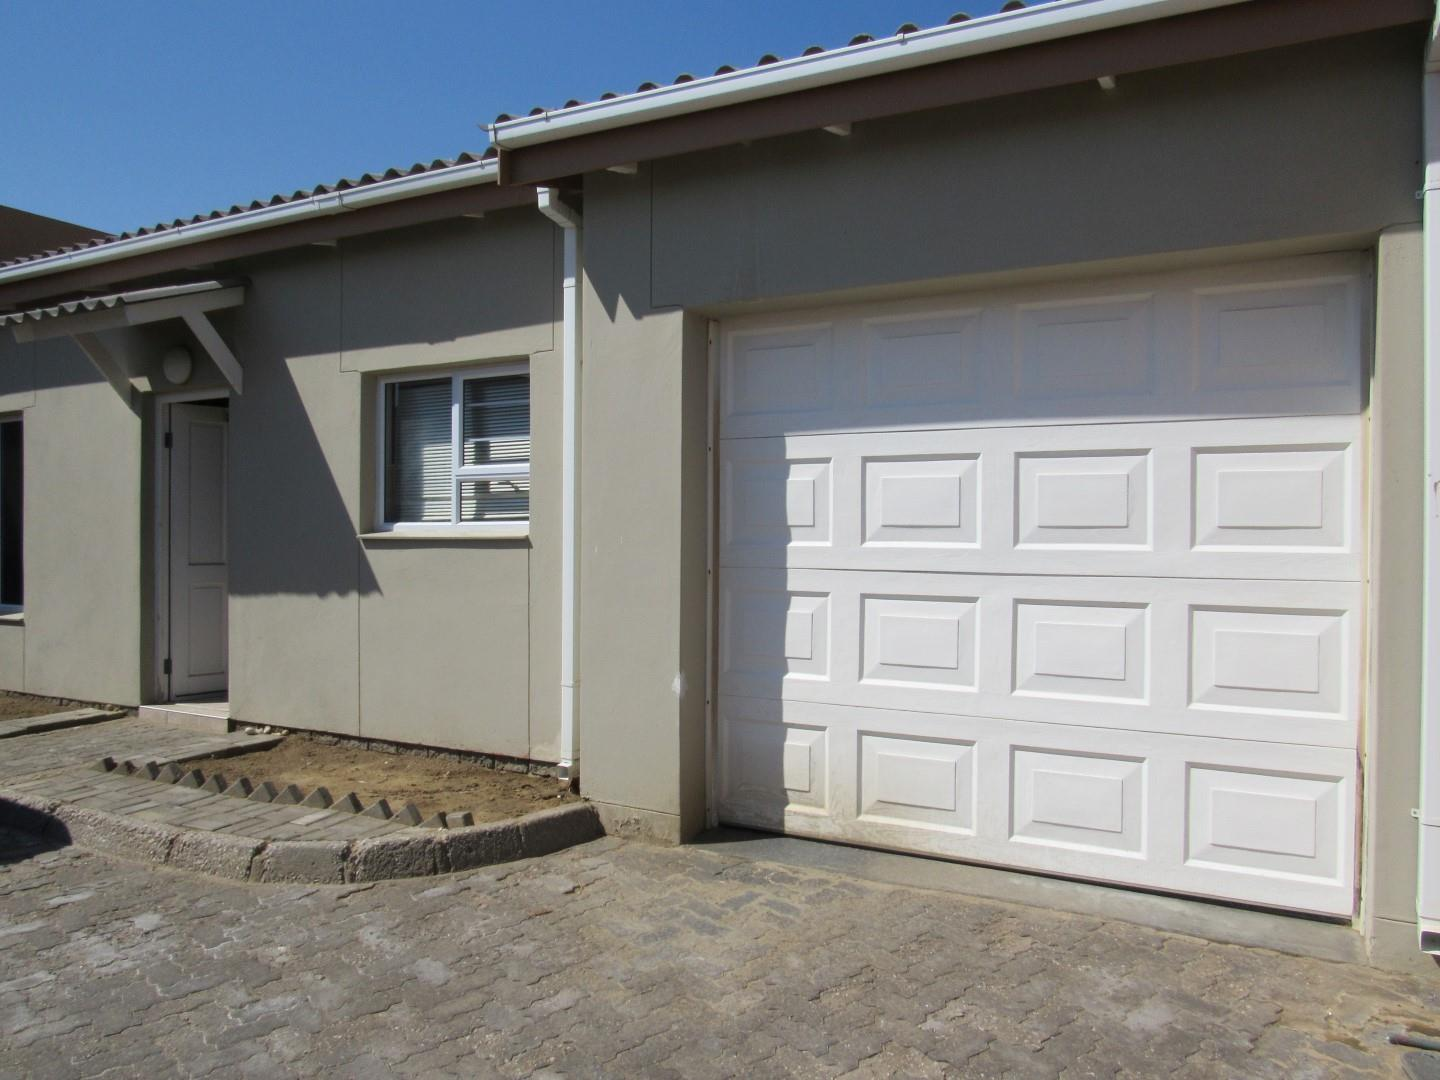 3 Bedroom  Townhouse for Sale in Walvis Bay - Erongo